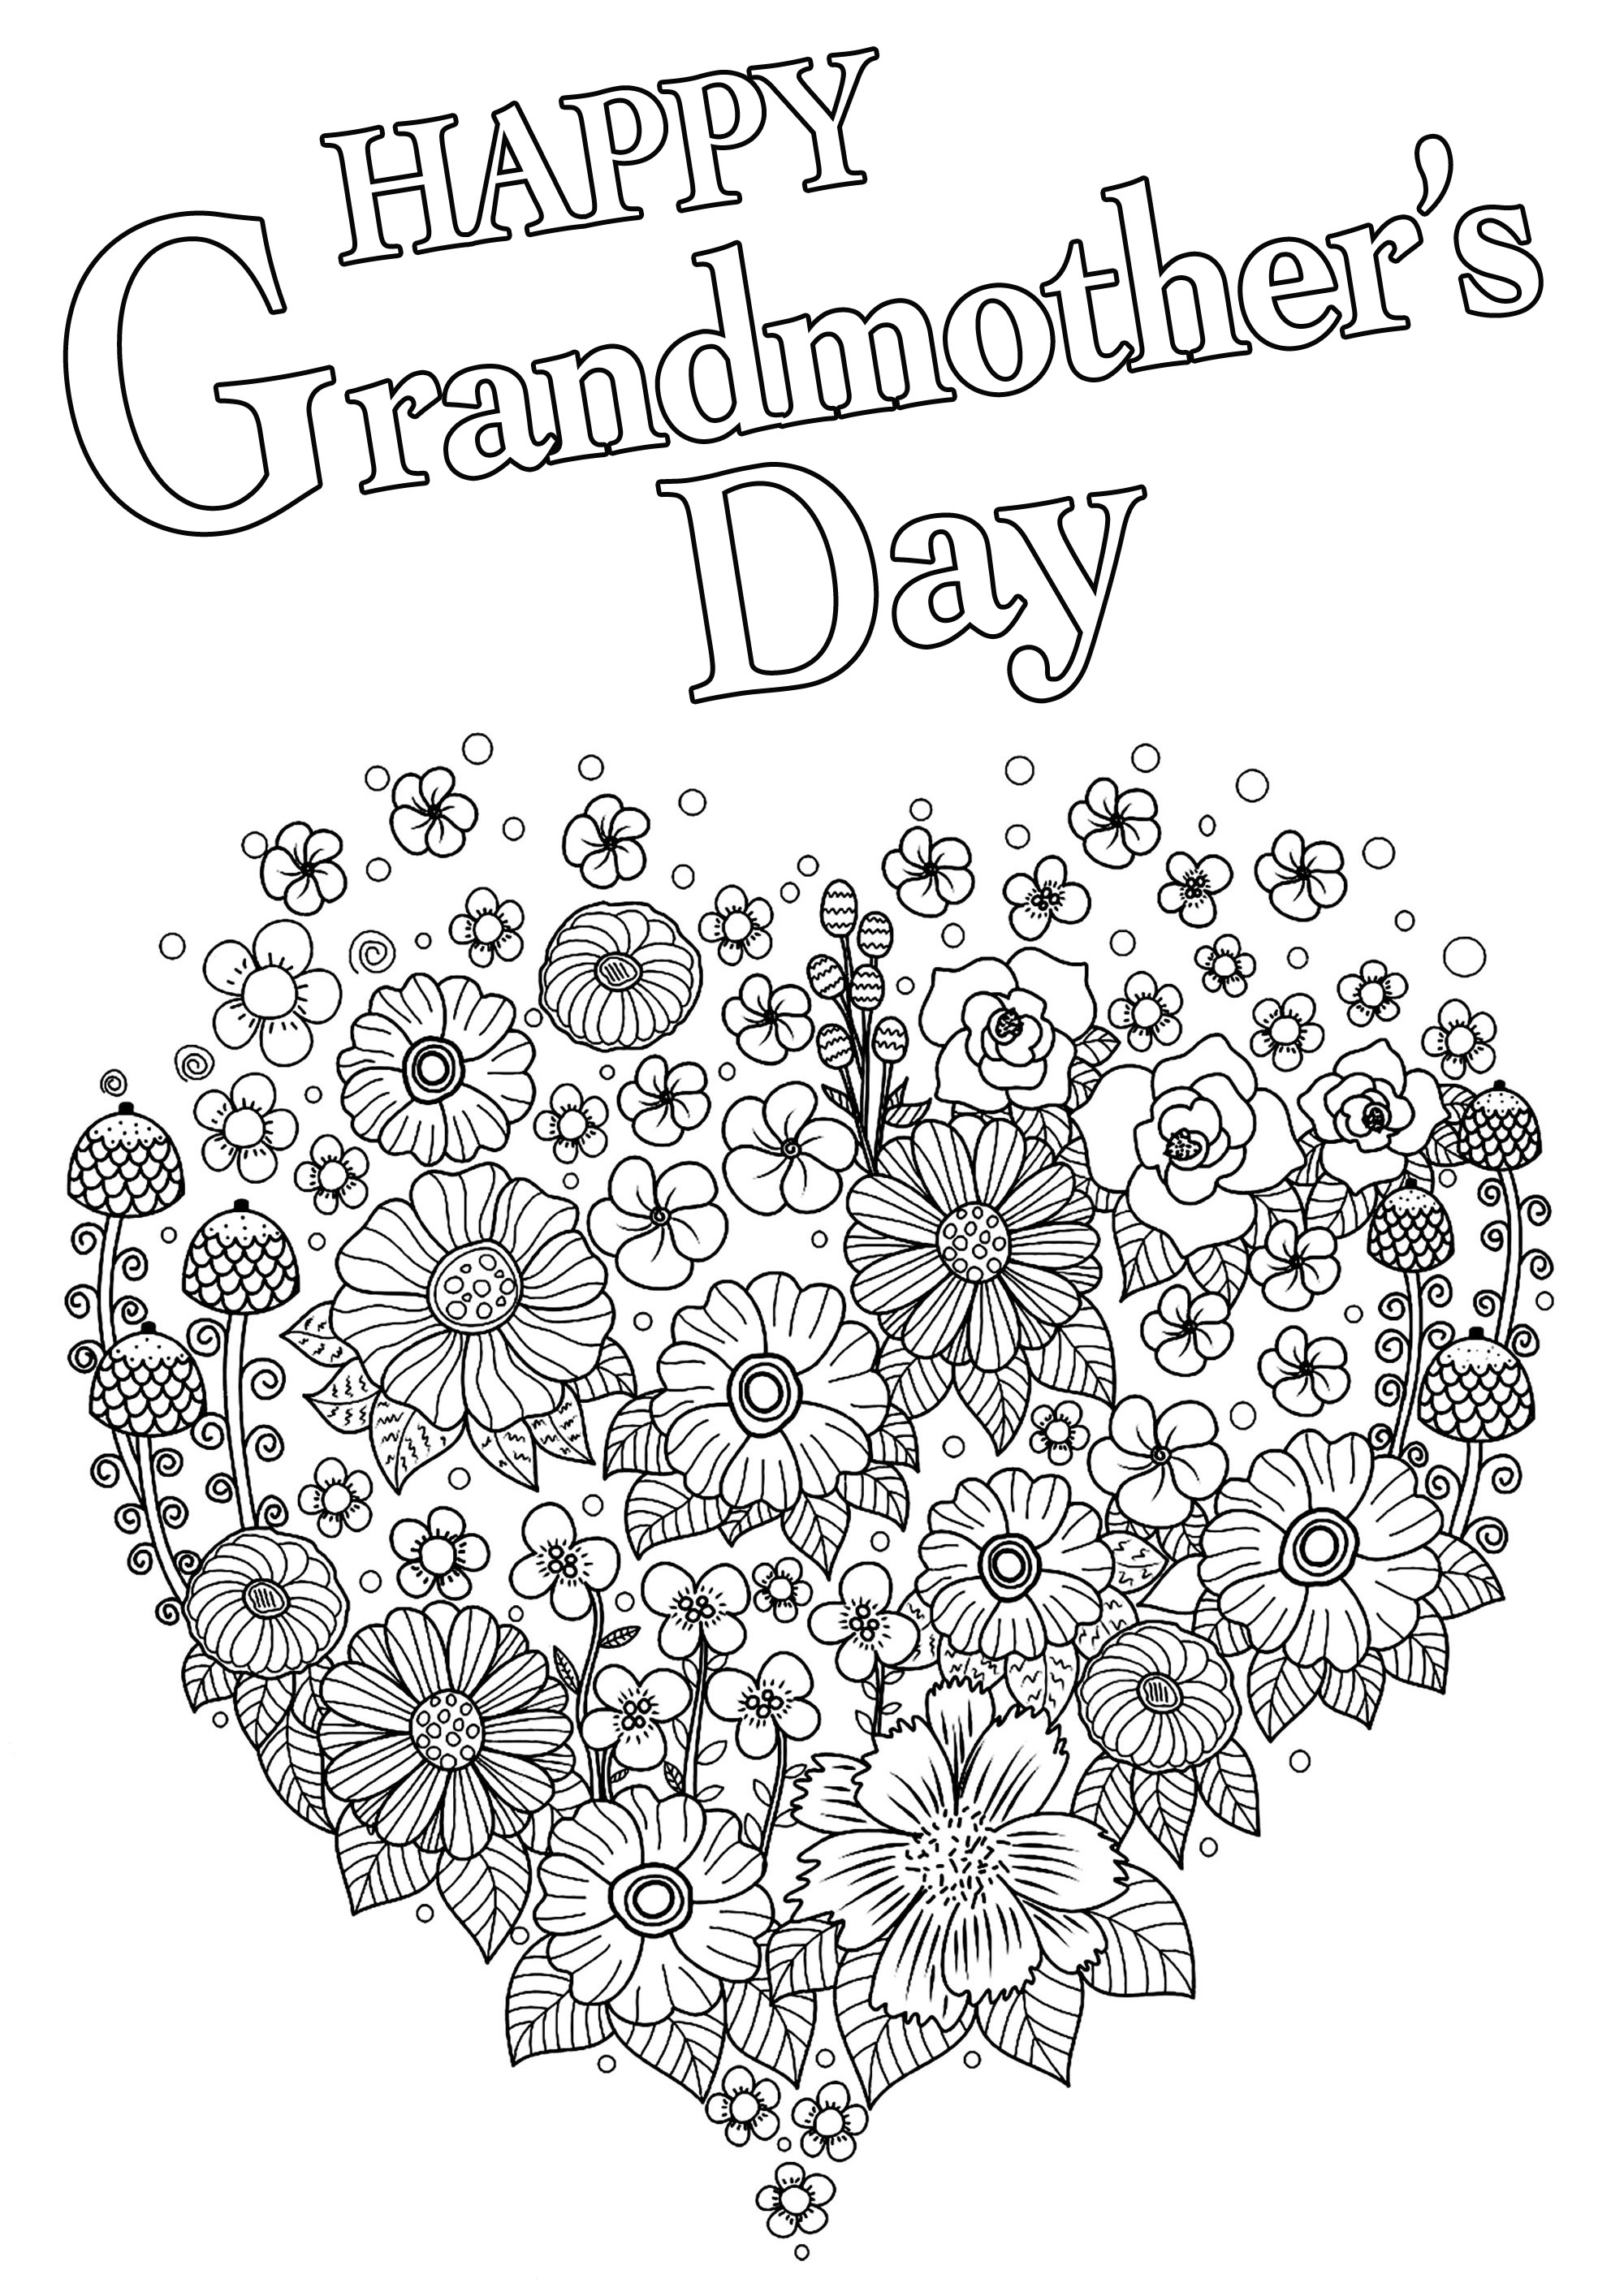 - Happy Grandmother's Day With Heart Full Of Flowers - Grandparents